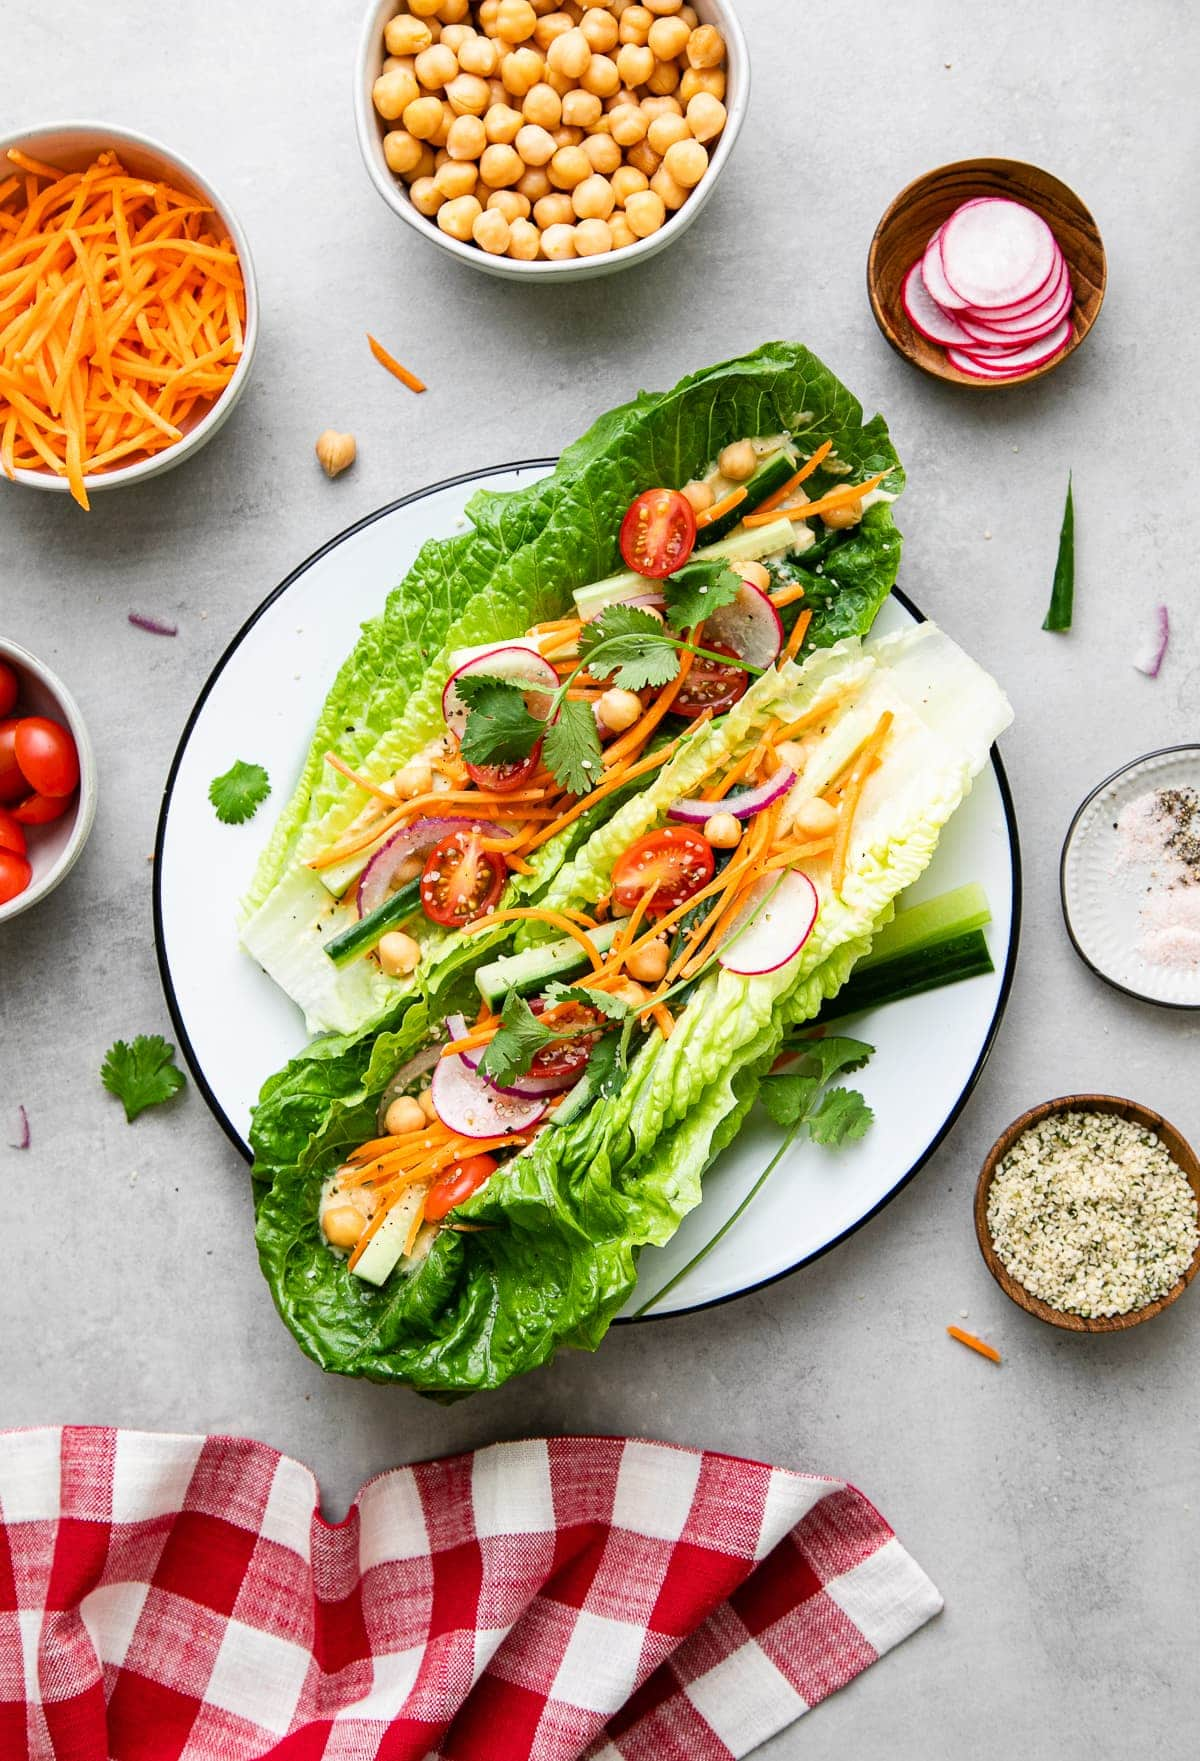 top down view of light and healthy, fresh vegan lettuce wraps on a plate with items surrounding.